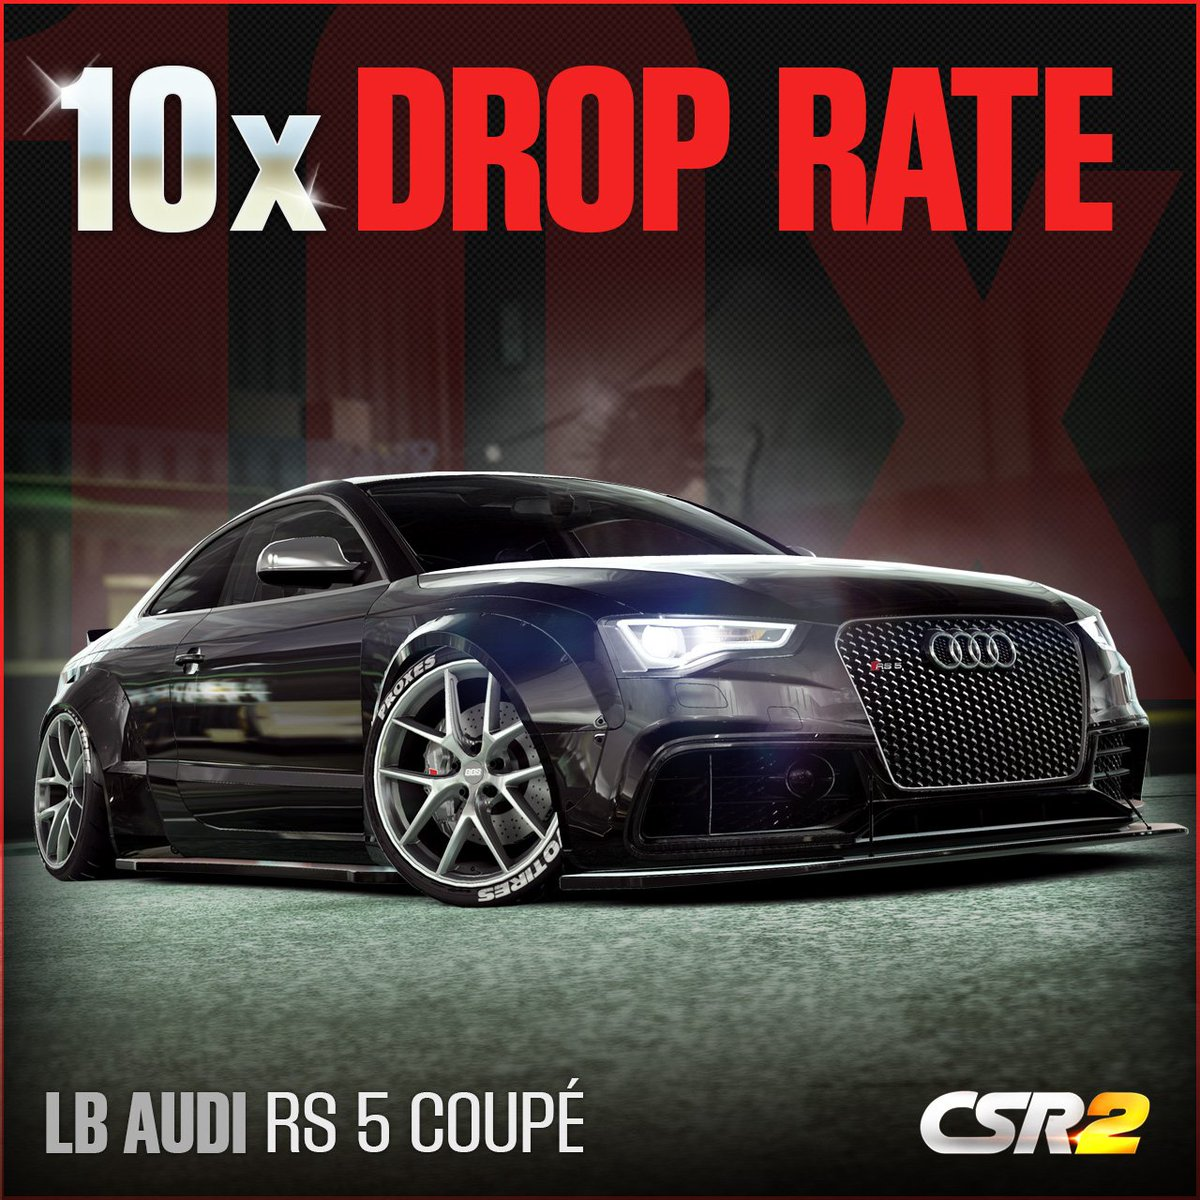 CSR Racing On Twitter X HIGHER Chance To Win The LB Audi RS - Audi rate